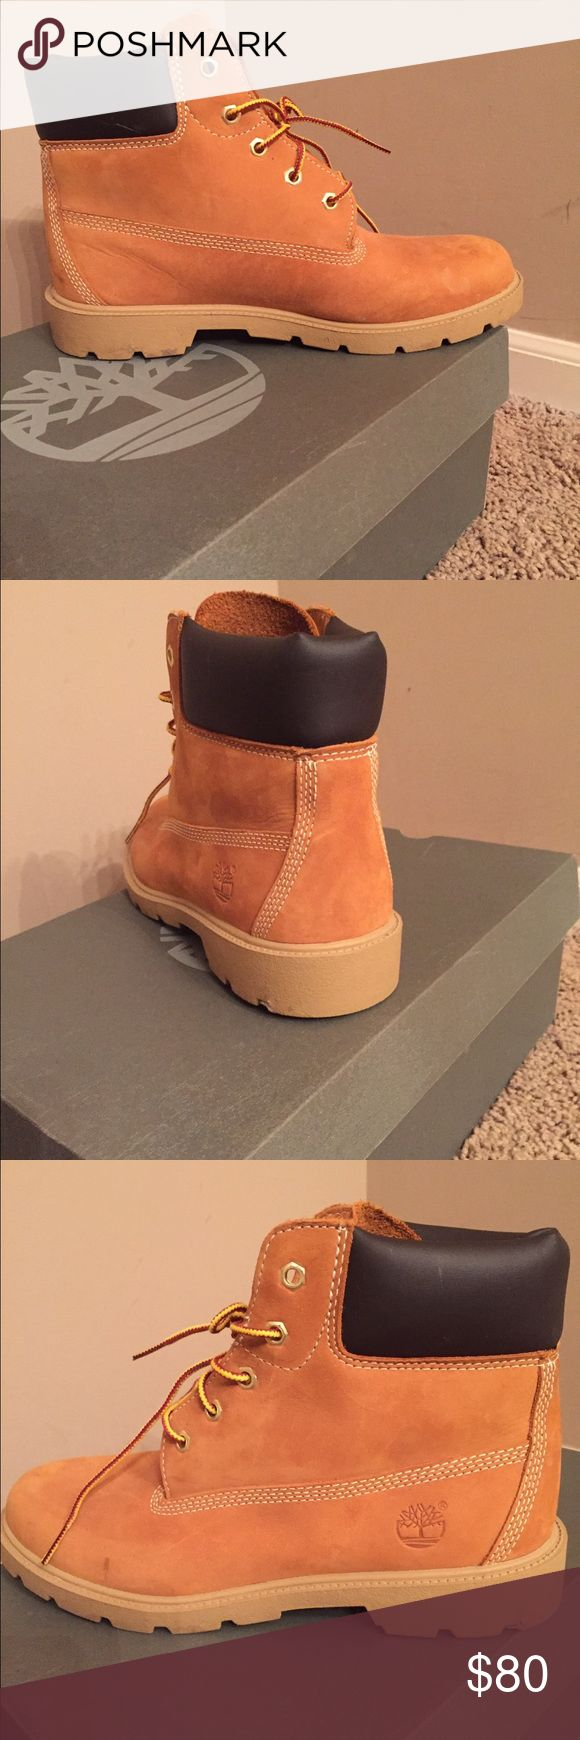 Big boys Timberland boots (wheat color) In EXCELLENT condition... only worn a few times. Timberland Shoes Rain & Snow Boots